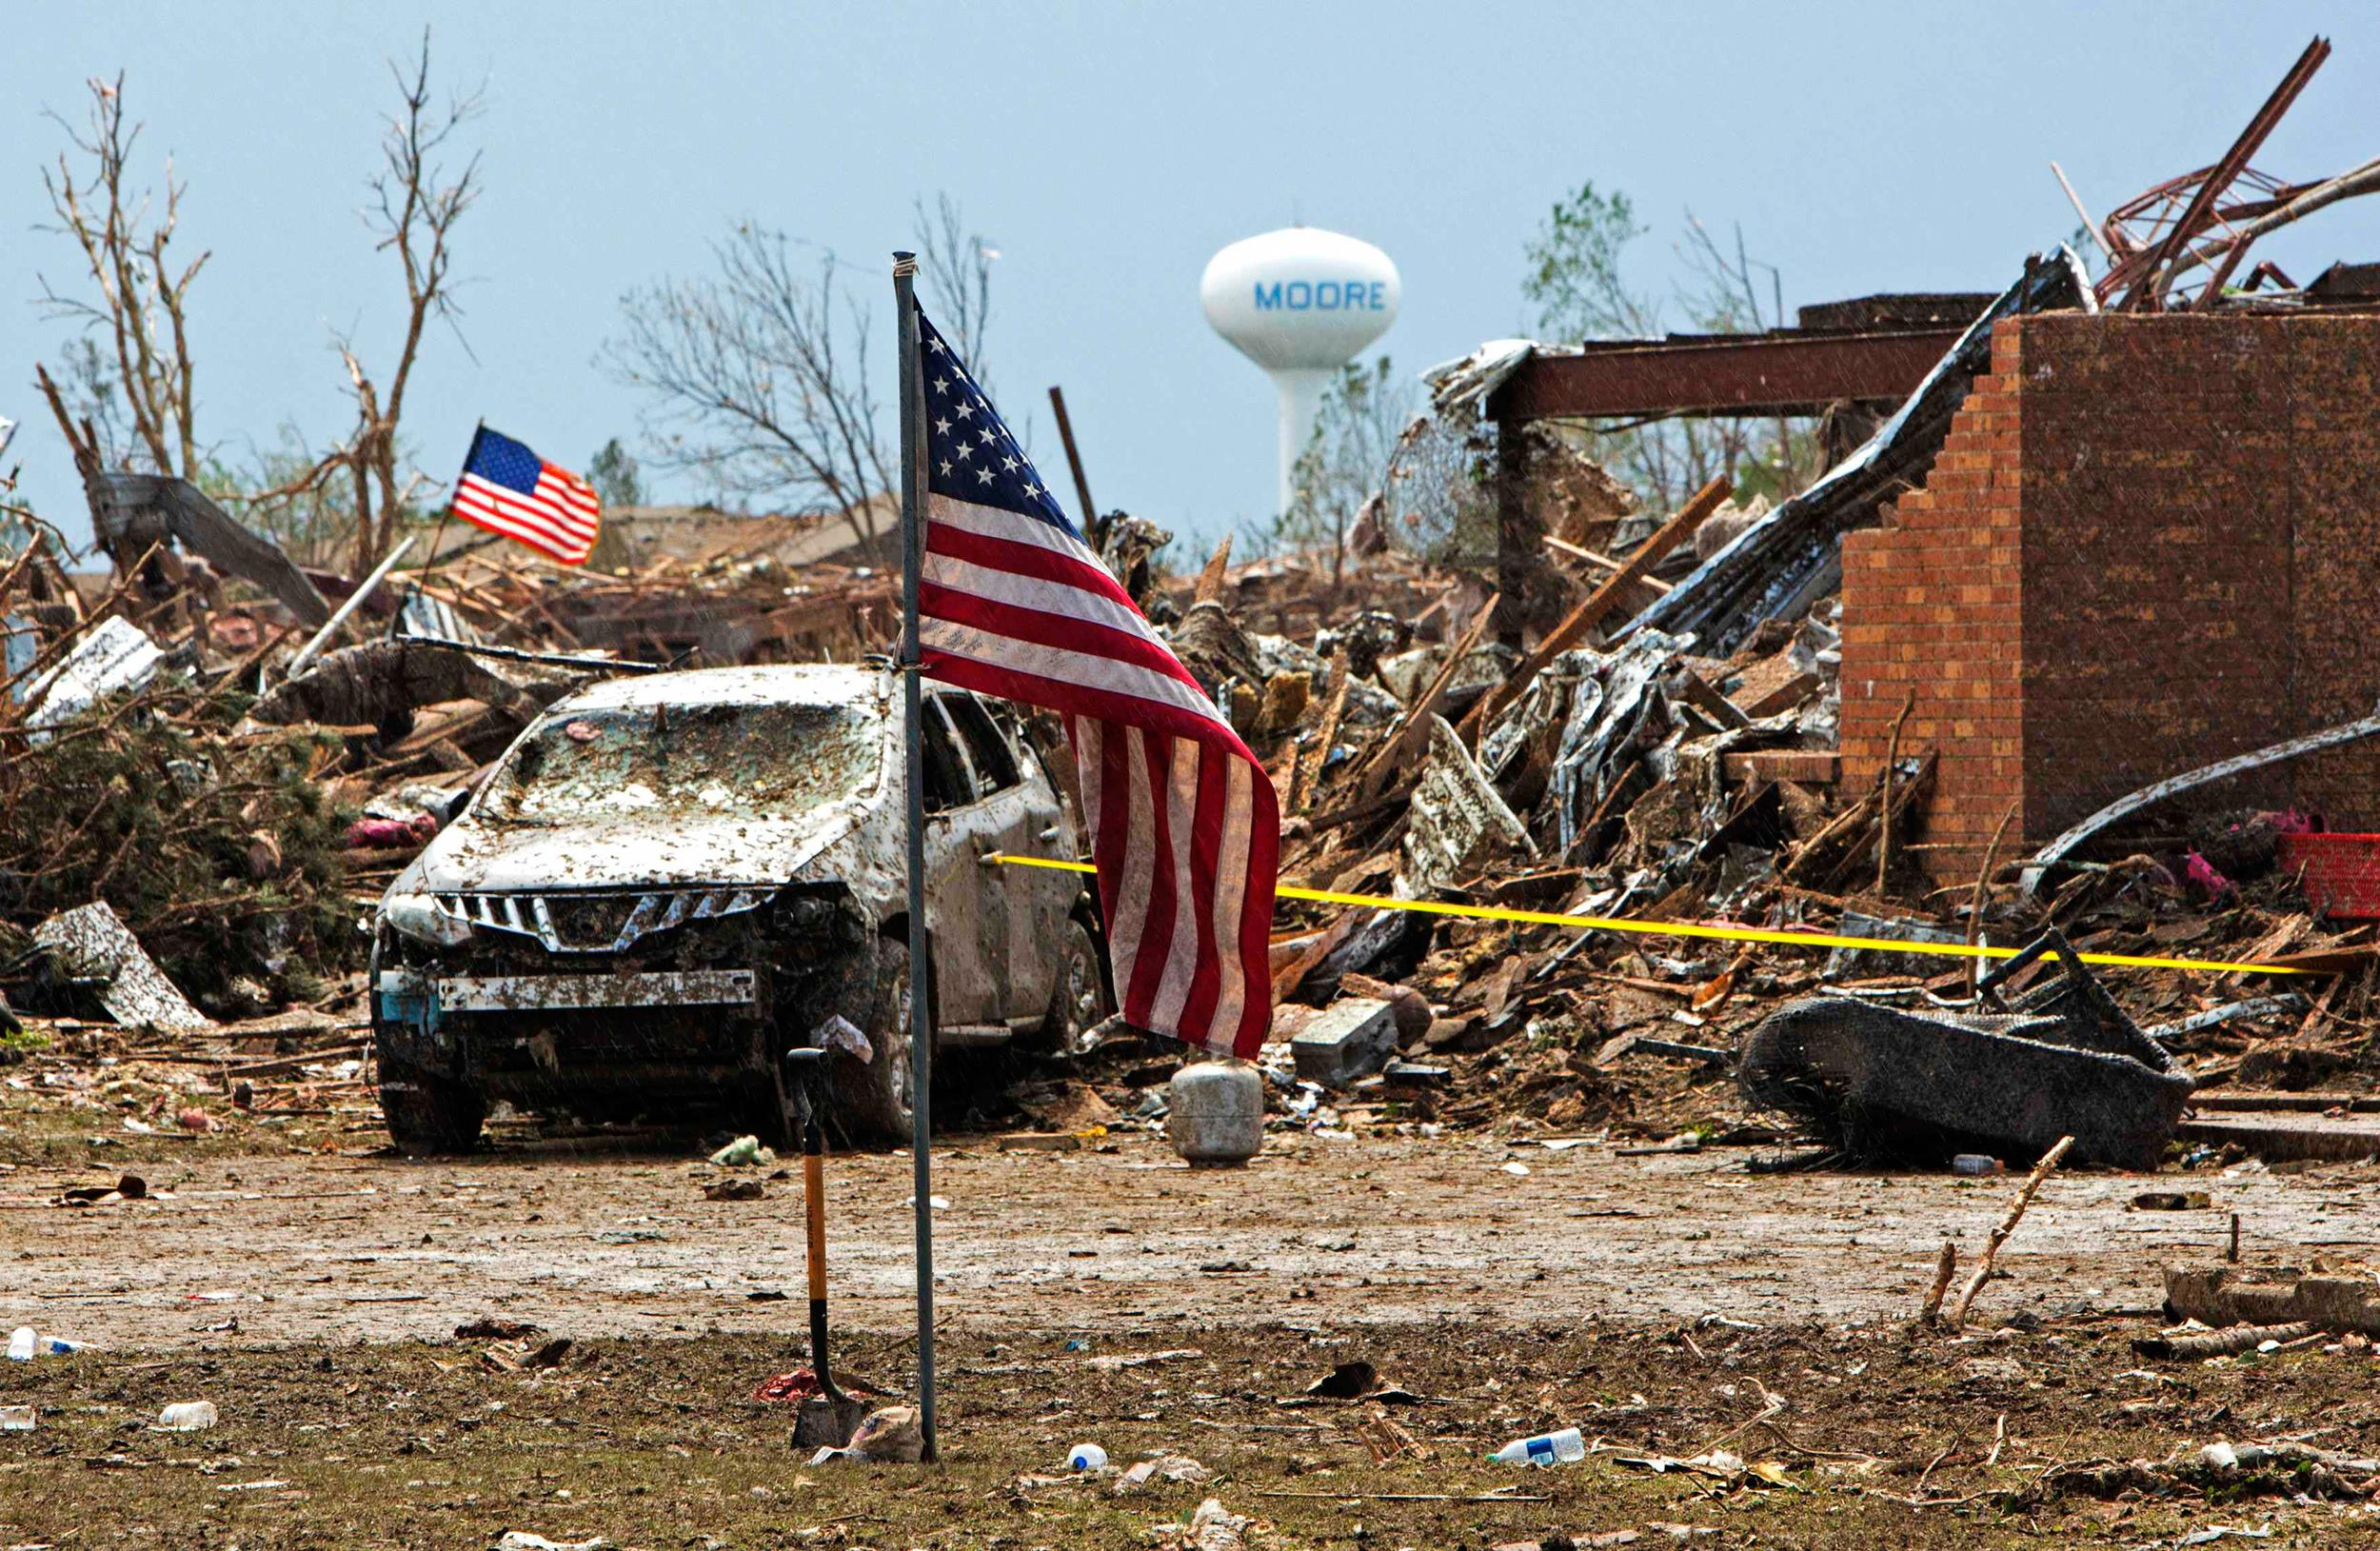 Image: American flags wave over the remains of Plaza Towers Elementary school in Moore, Oklahoma